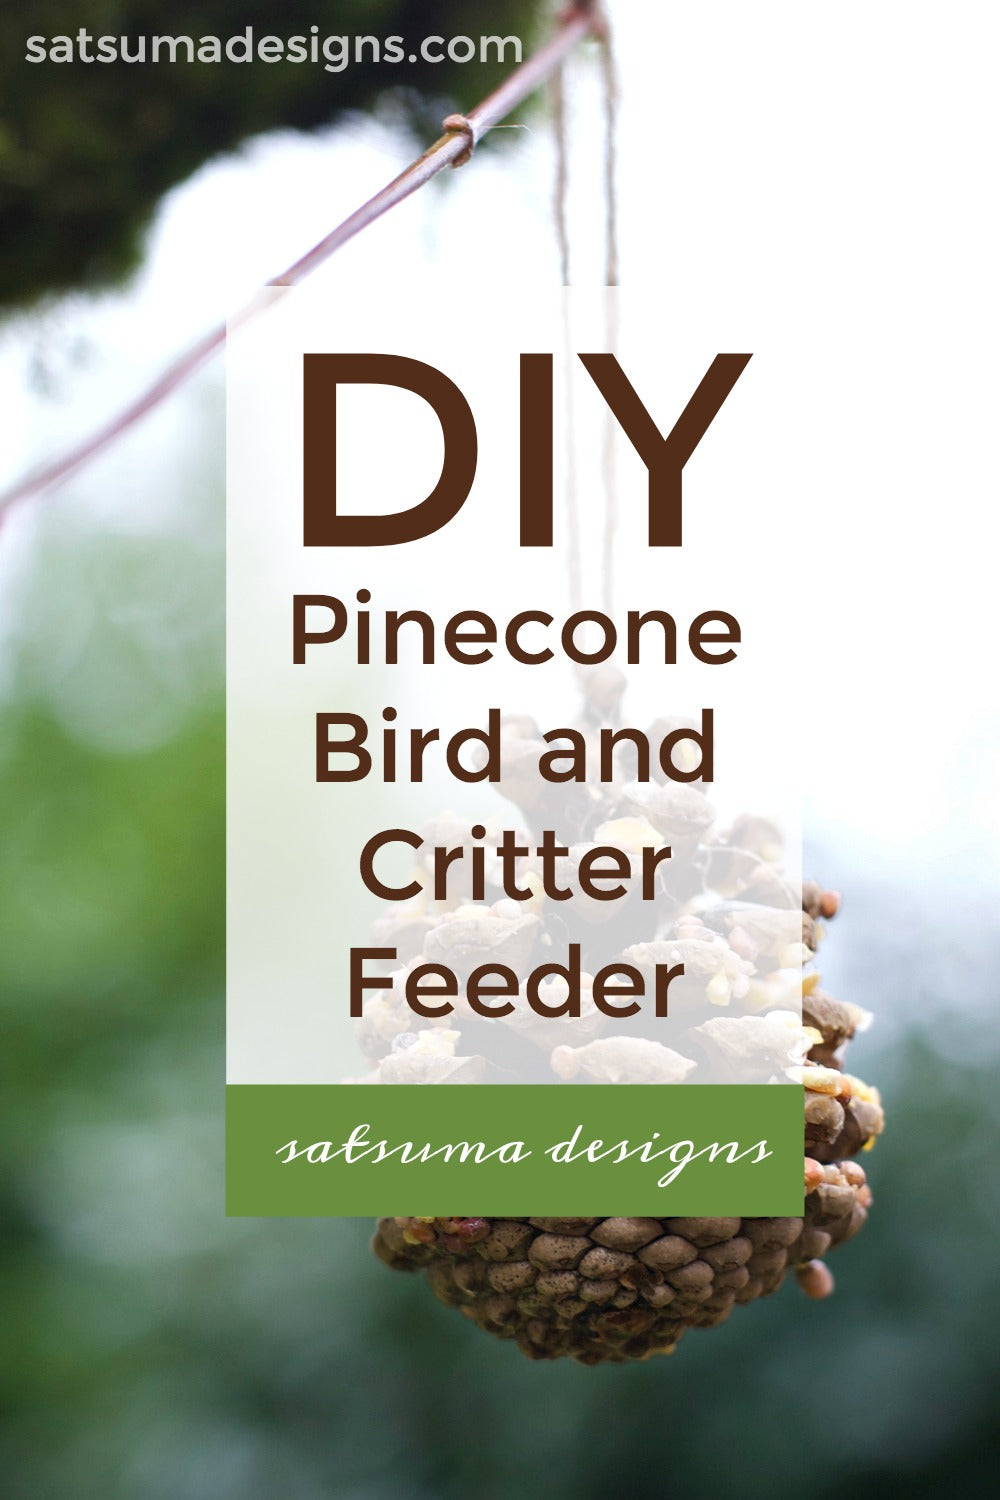 DIY pinecone bird and critter feeder to keep animals happy and healthy all winter long. This is a quick and easy rainy or snow day craft for kids and adults! #pinecone #crafts #birdfeeder #critters #easycrafts #naturecrafts #satsumadesigns